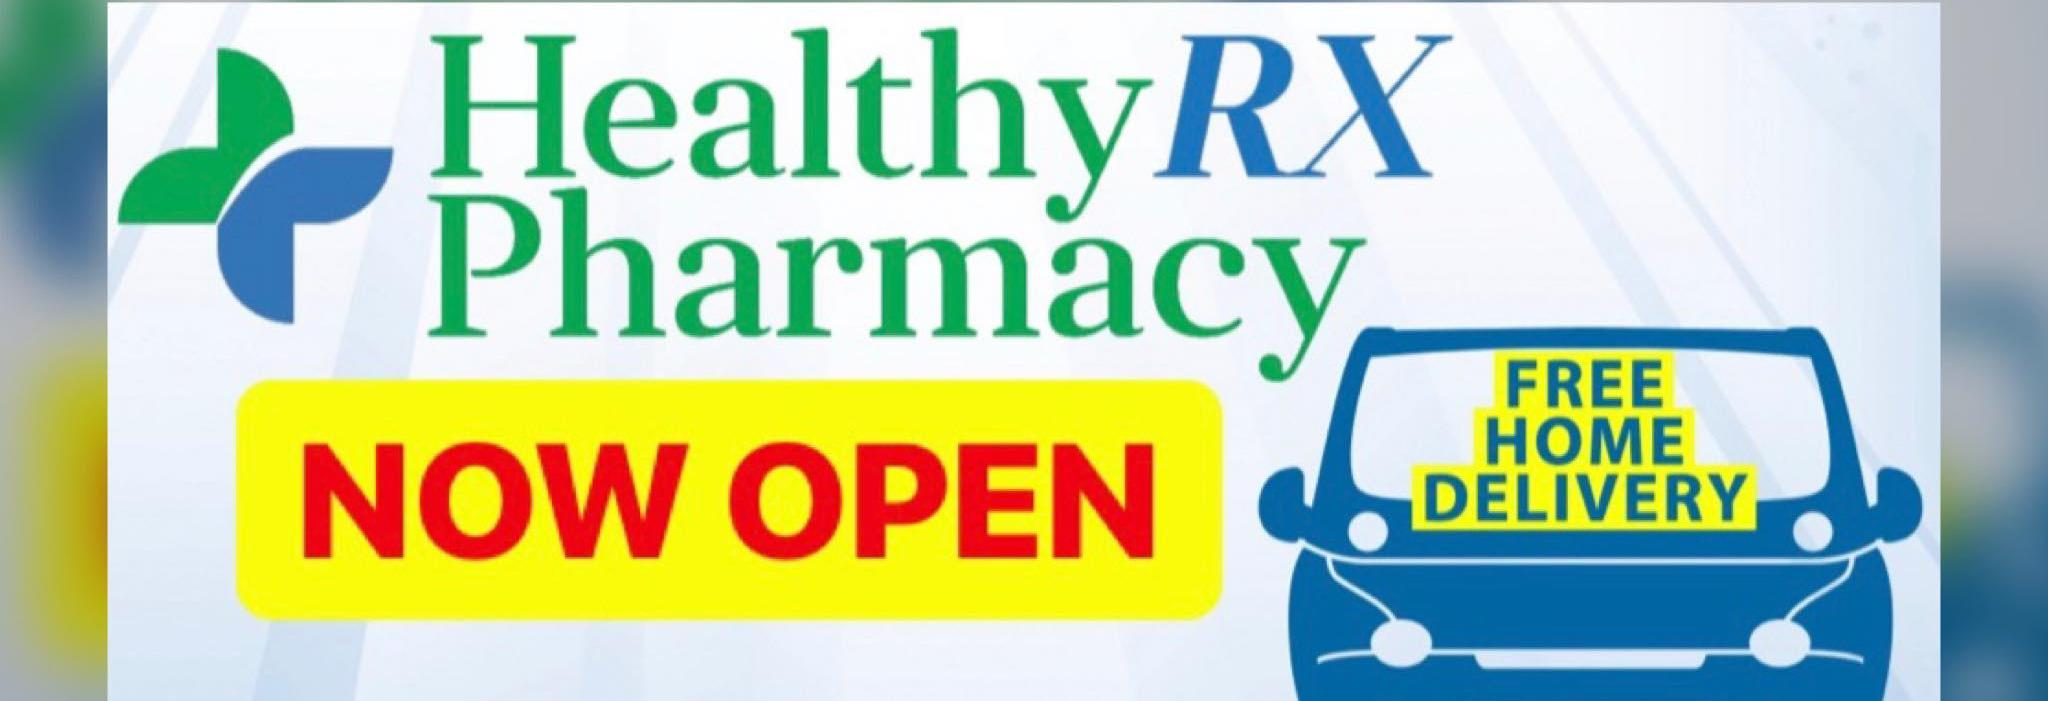 healthy rx pharmacy toledo deliver pick up